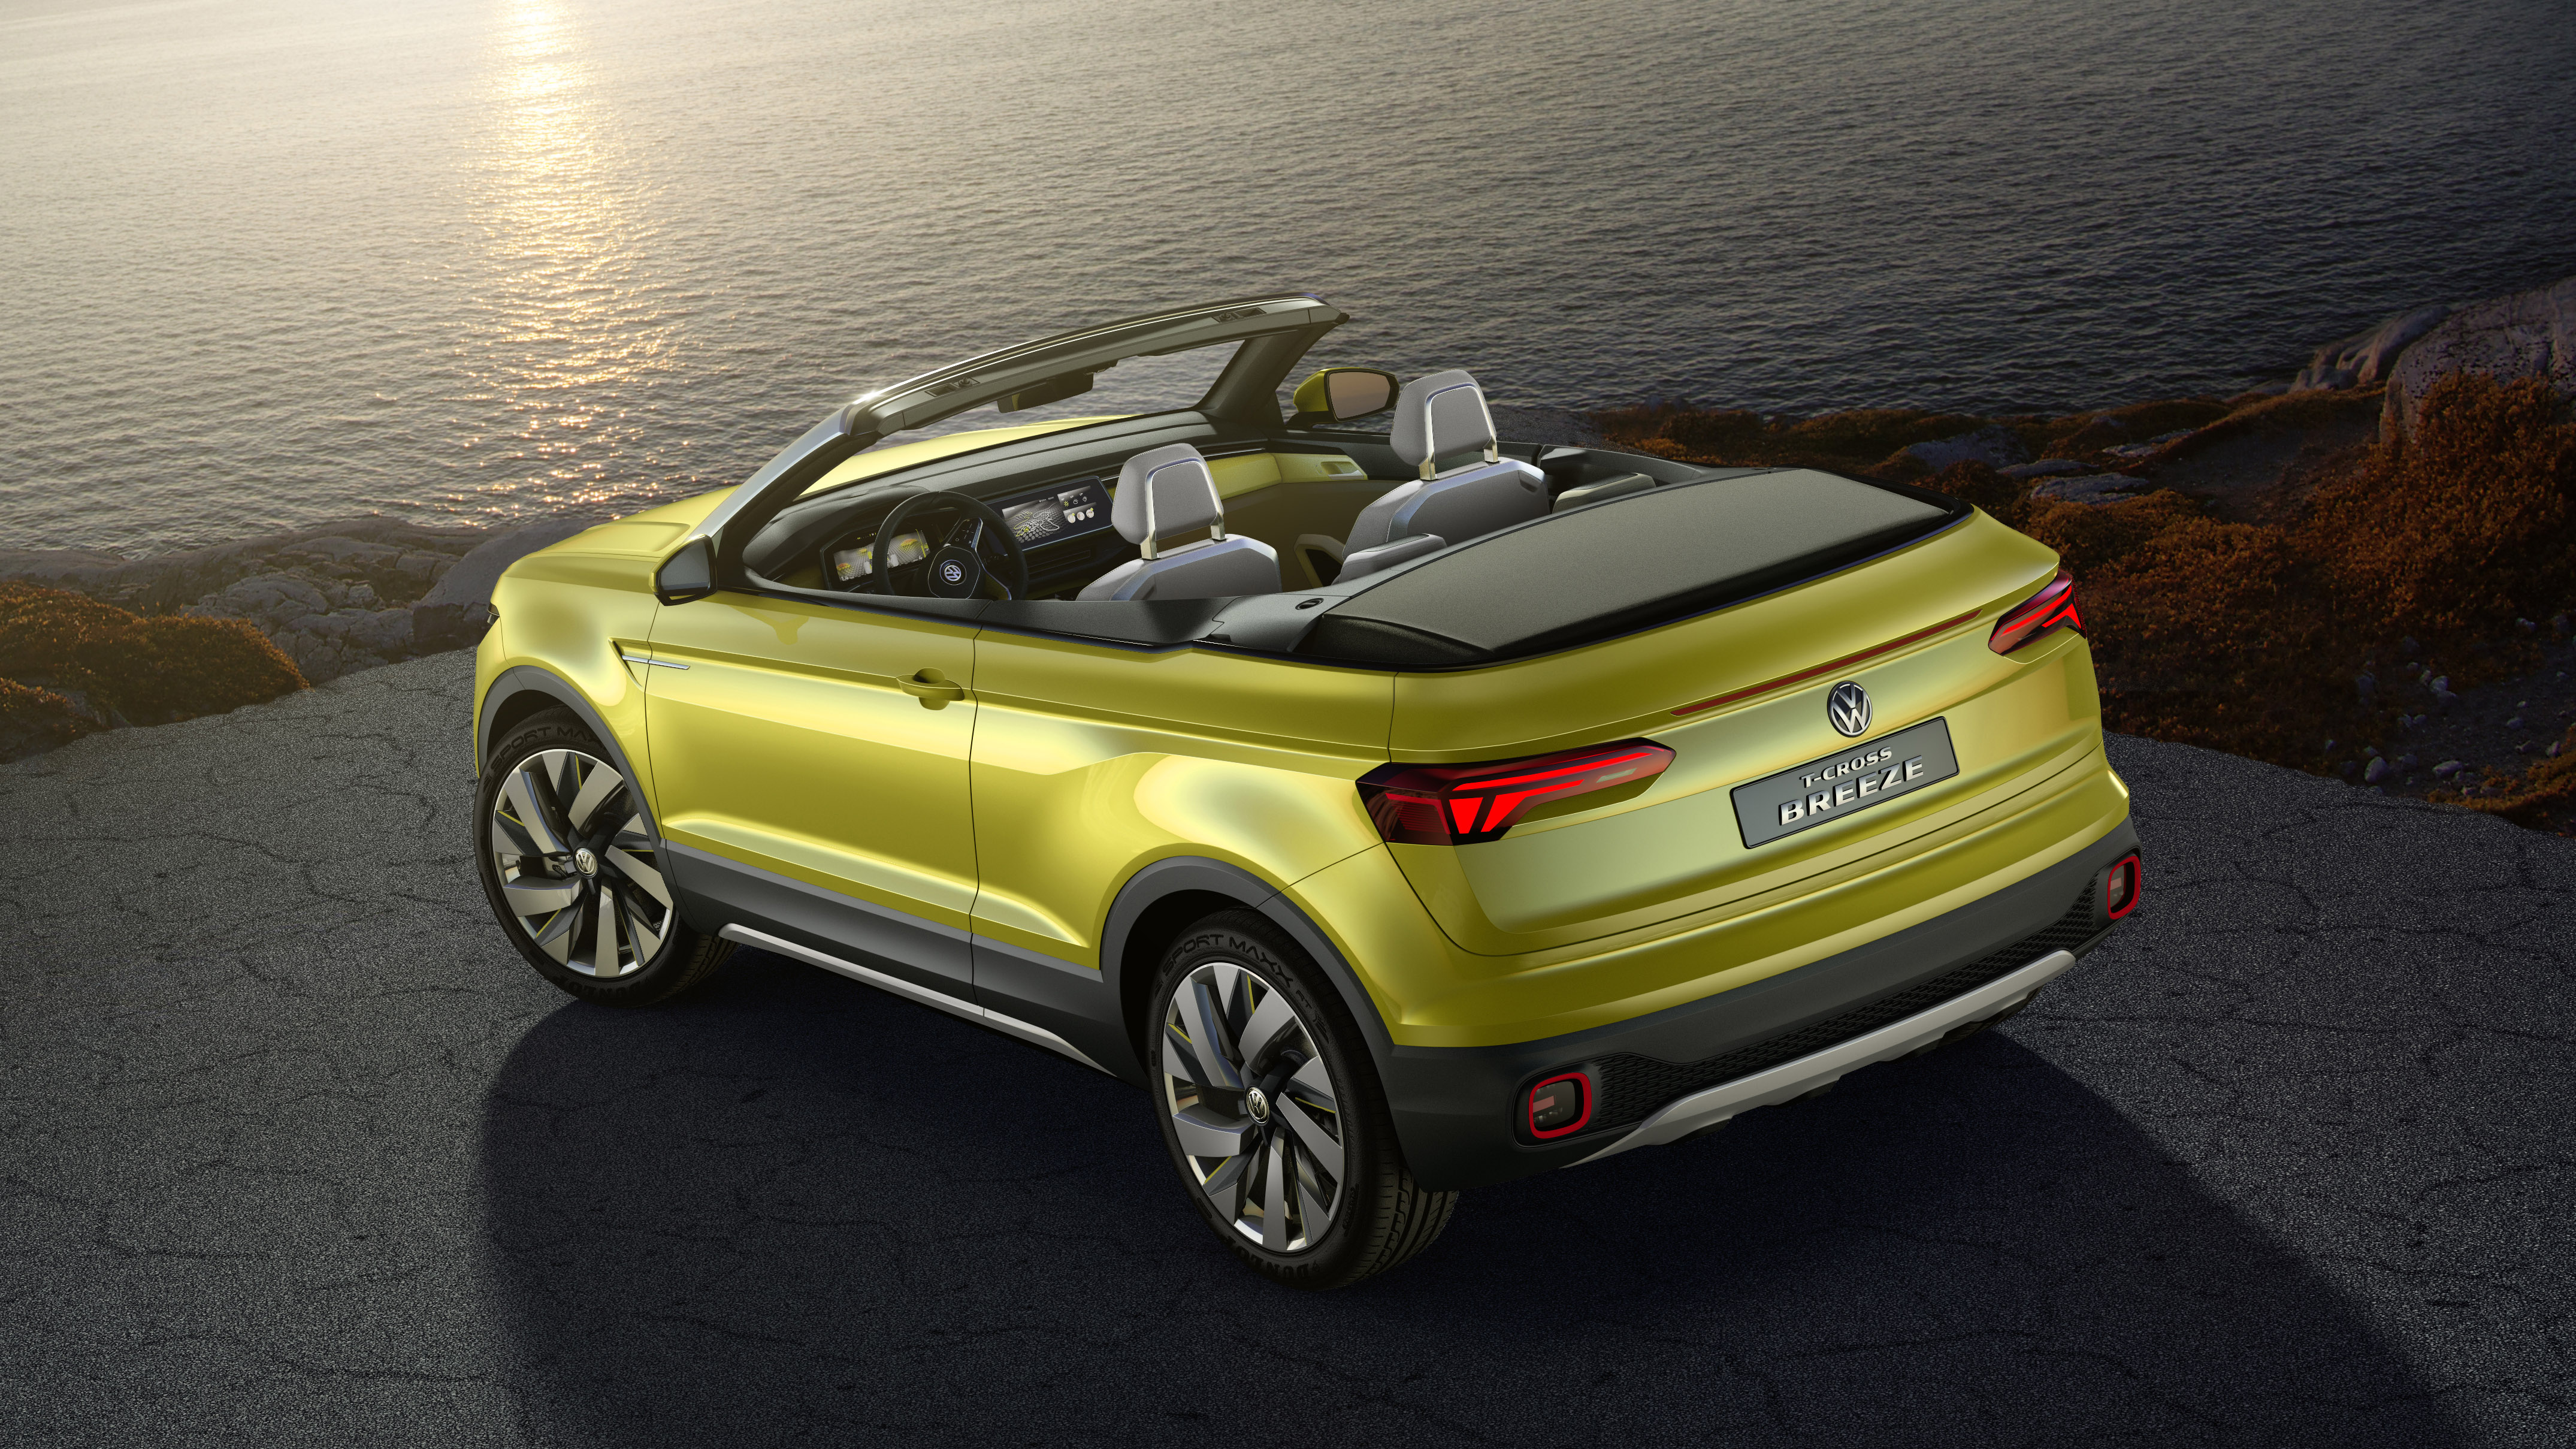 The Vw T Cross Is A Polo Sized Convertible Suv Top Gear